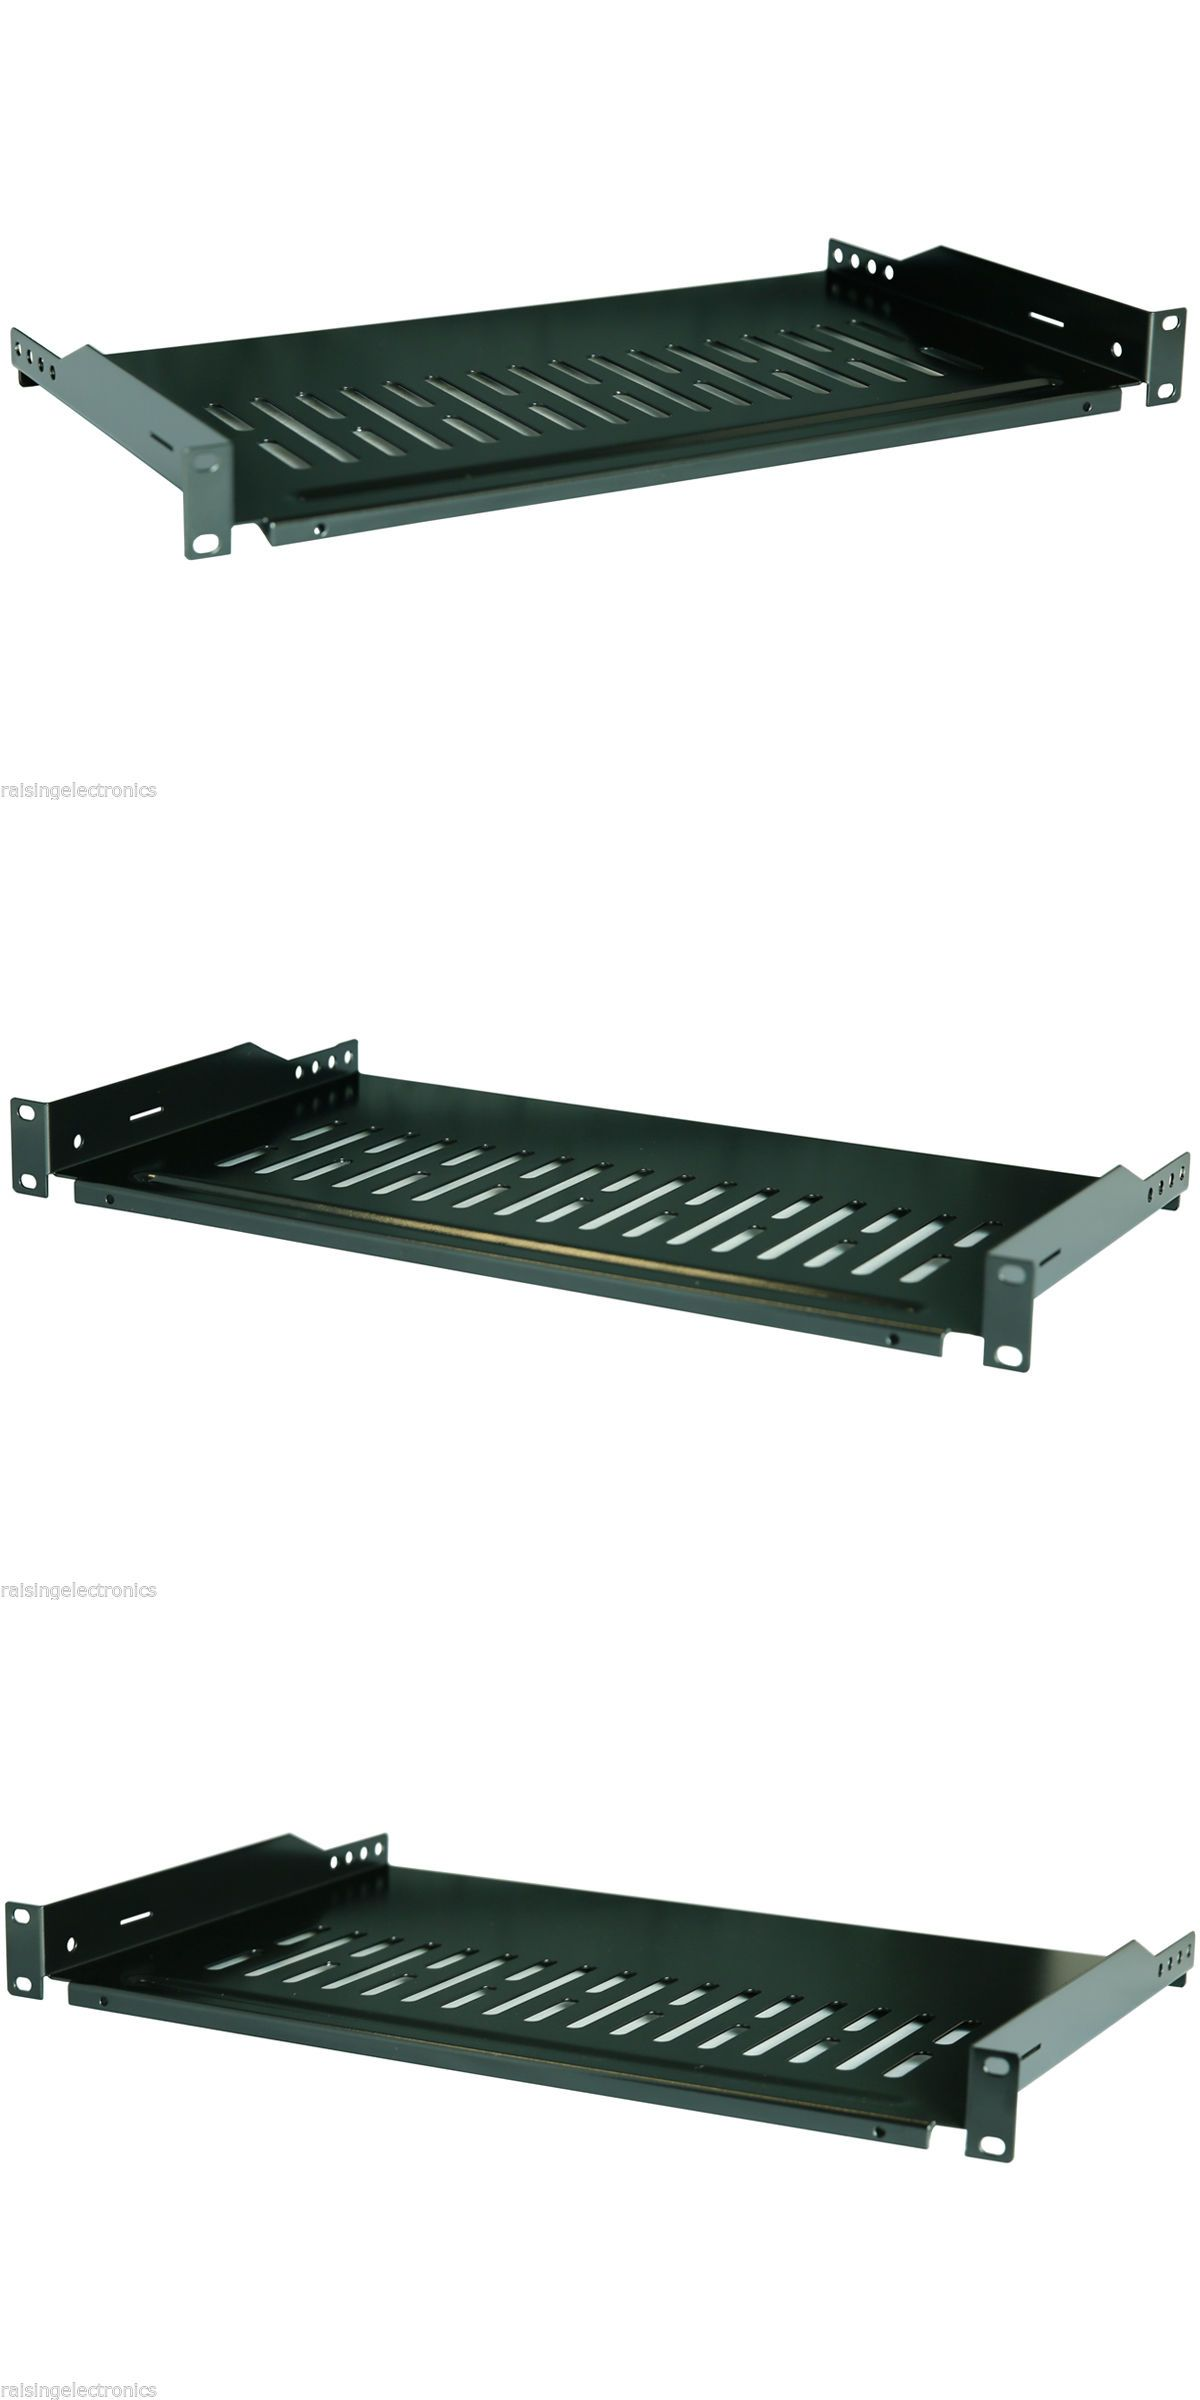 Rackmount Cabinets And Frames 51199 1u Cantilever Server Shelf Vented Shelves Rack Mount 19 1u 10 250mm Deep Buy It Wall Mount Rack Server Rack Mounting